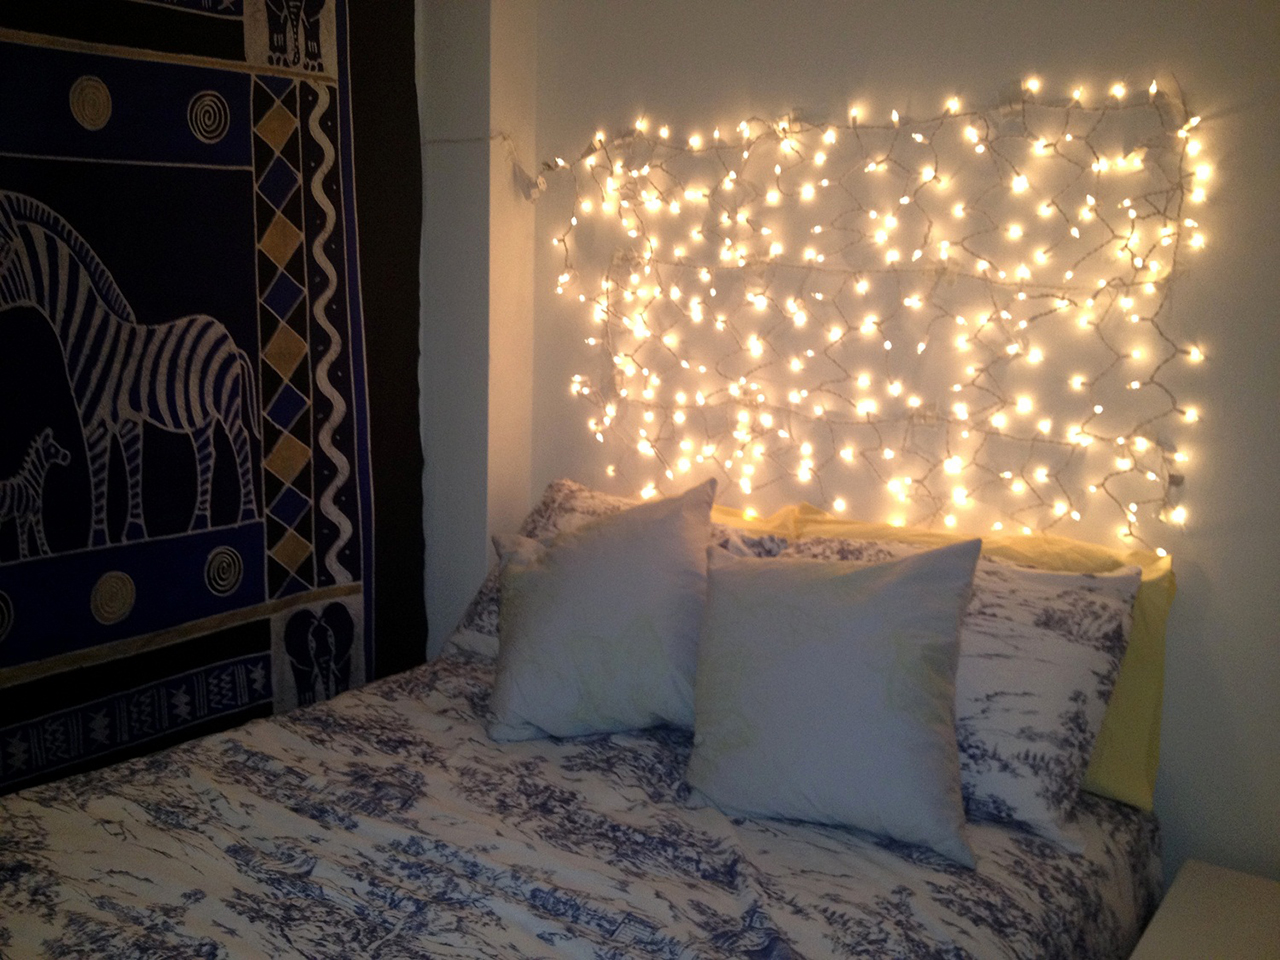 13 String Lights Headboard